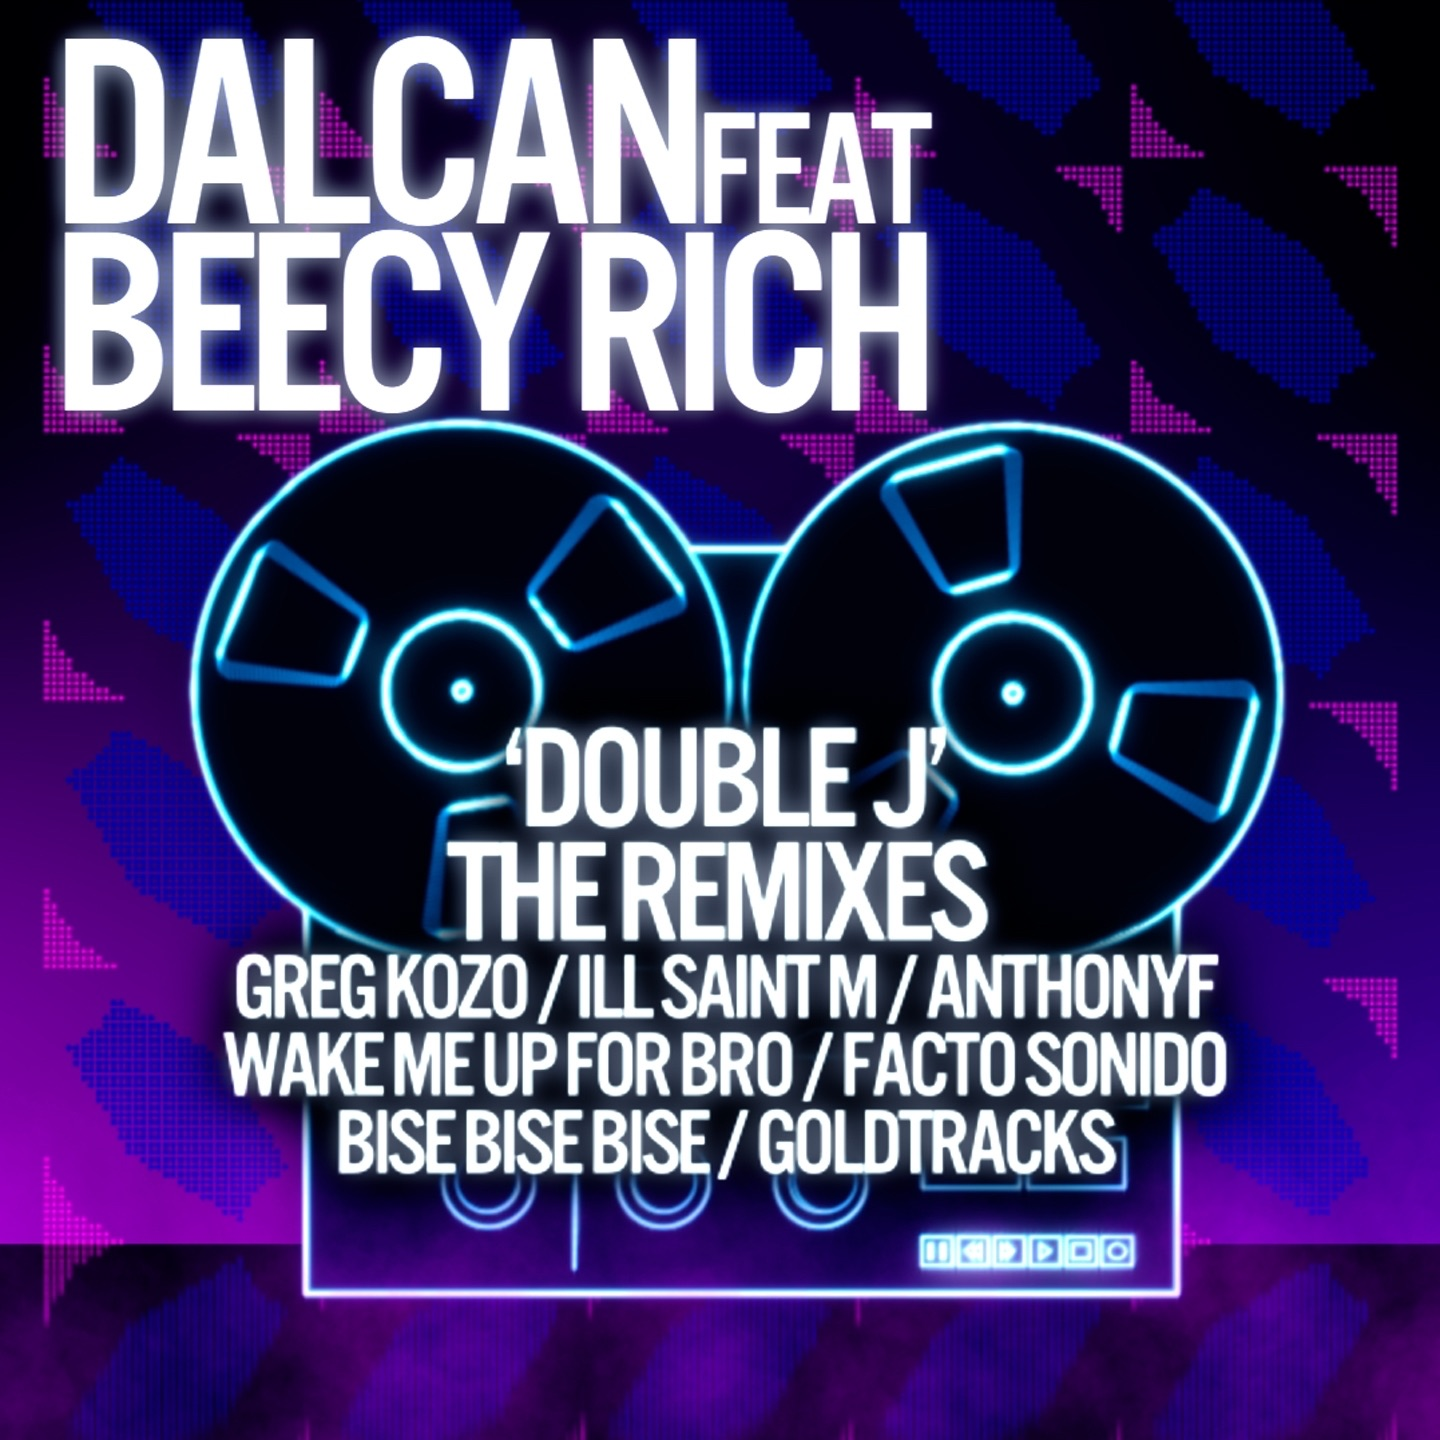 The Way I Do (feat. Beecy Rich) [Wake Me Up For Bro Remix]